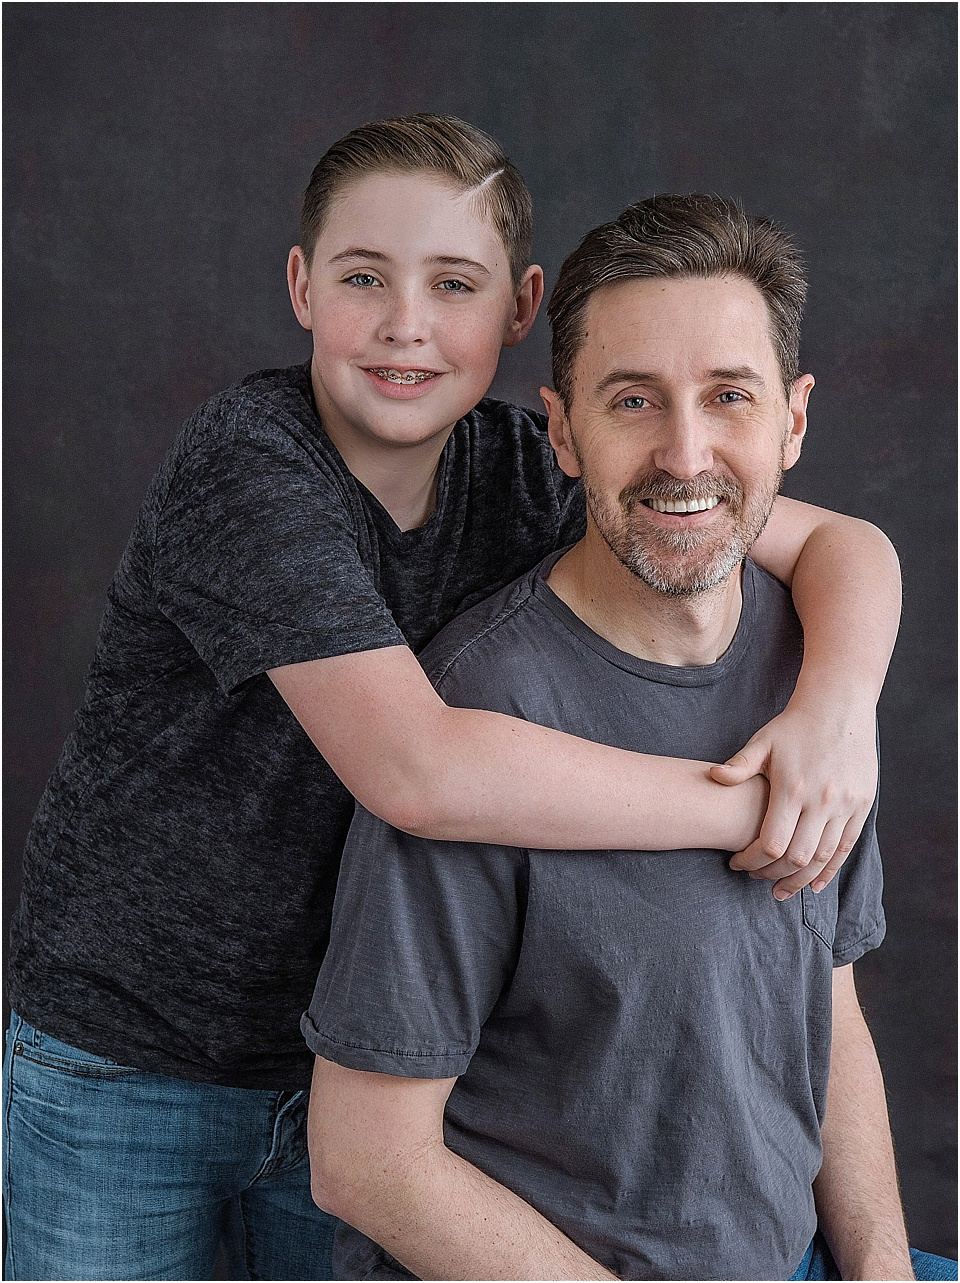 The fellas are happiest when they are comfortable so why fight it? Let emotion and connection be their best accessory when Dad and Son take center stage.